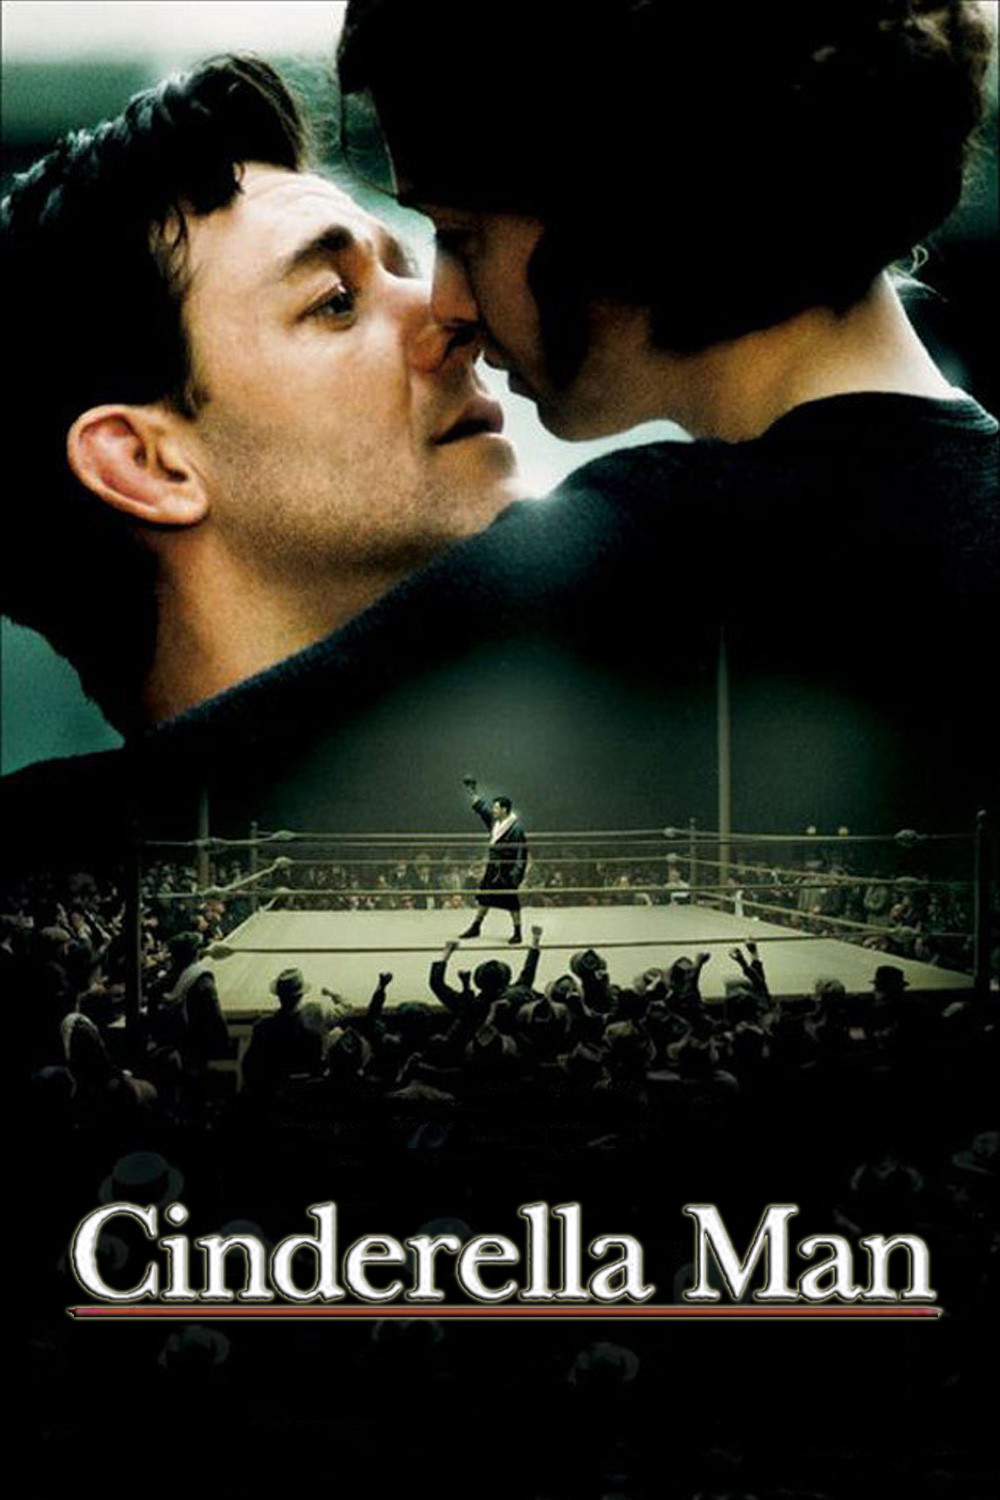 account of the life of jimmy braddock during the great depression in the film cinderella man Cinderella man the film itself is replete jimmy johnston even braddock's children meant to represent american culture during the great depression.